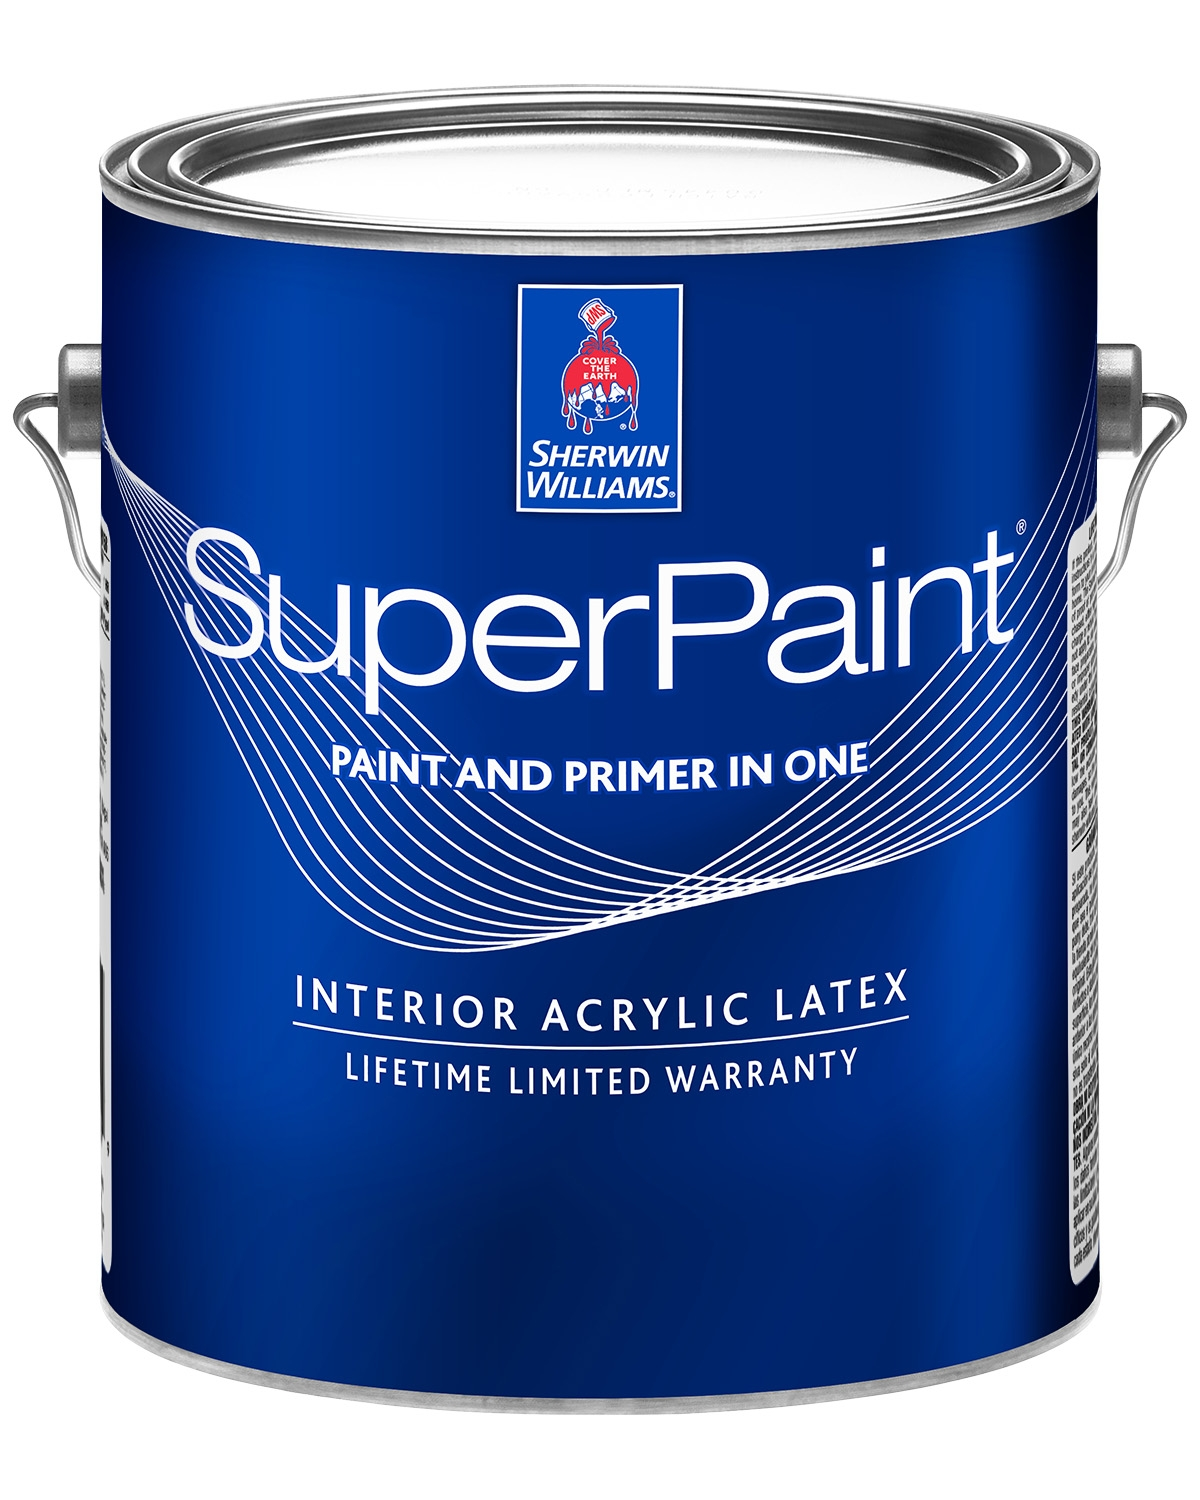 SuperPaint® Interior Acrylic Latex Paint - Sherwin-Williams